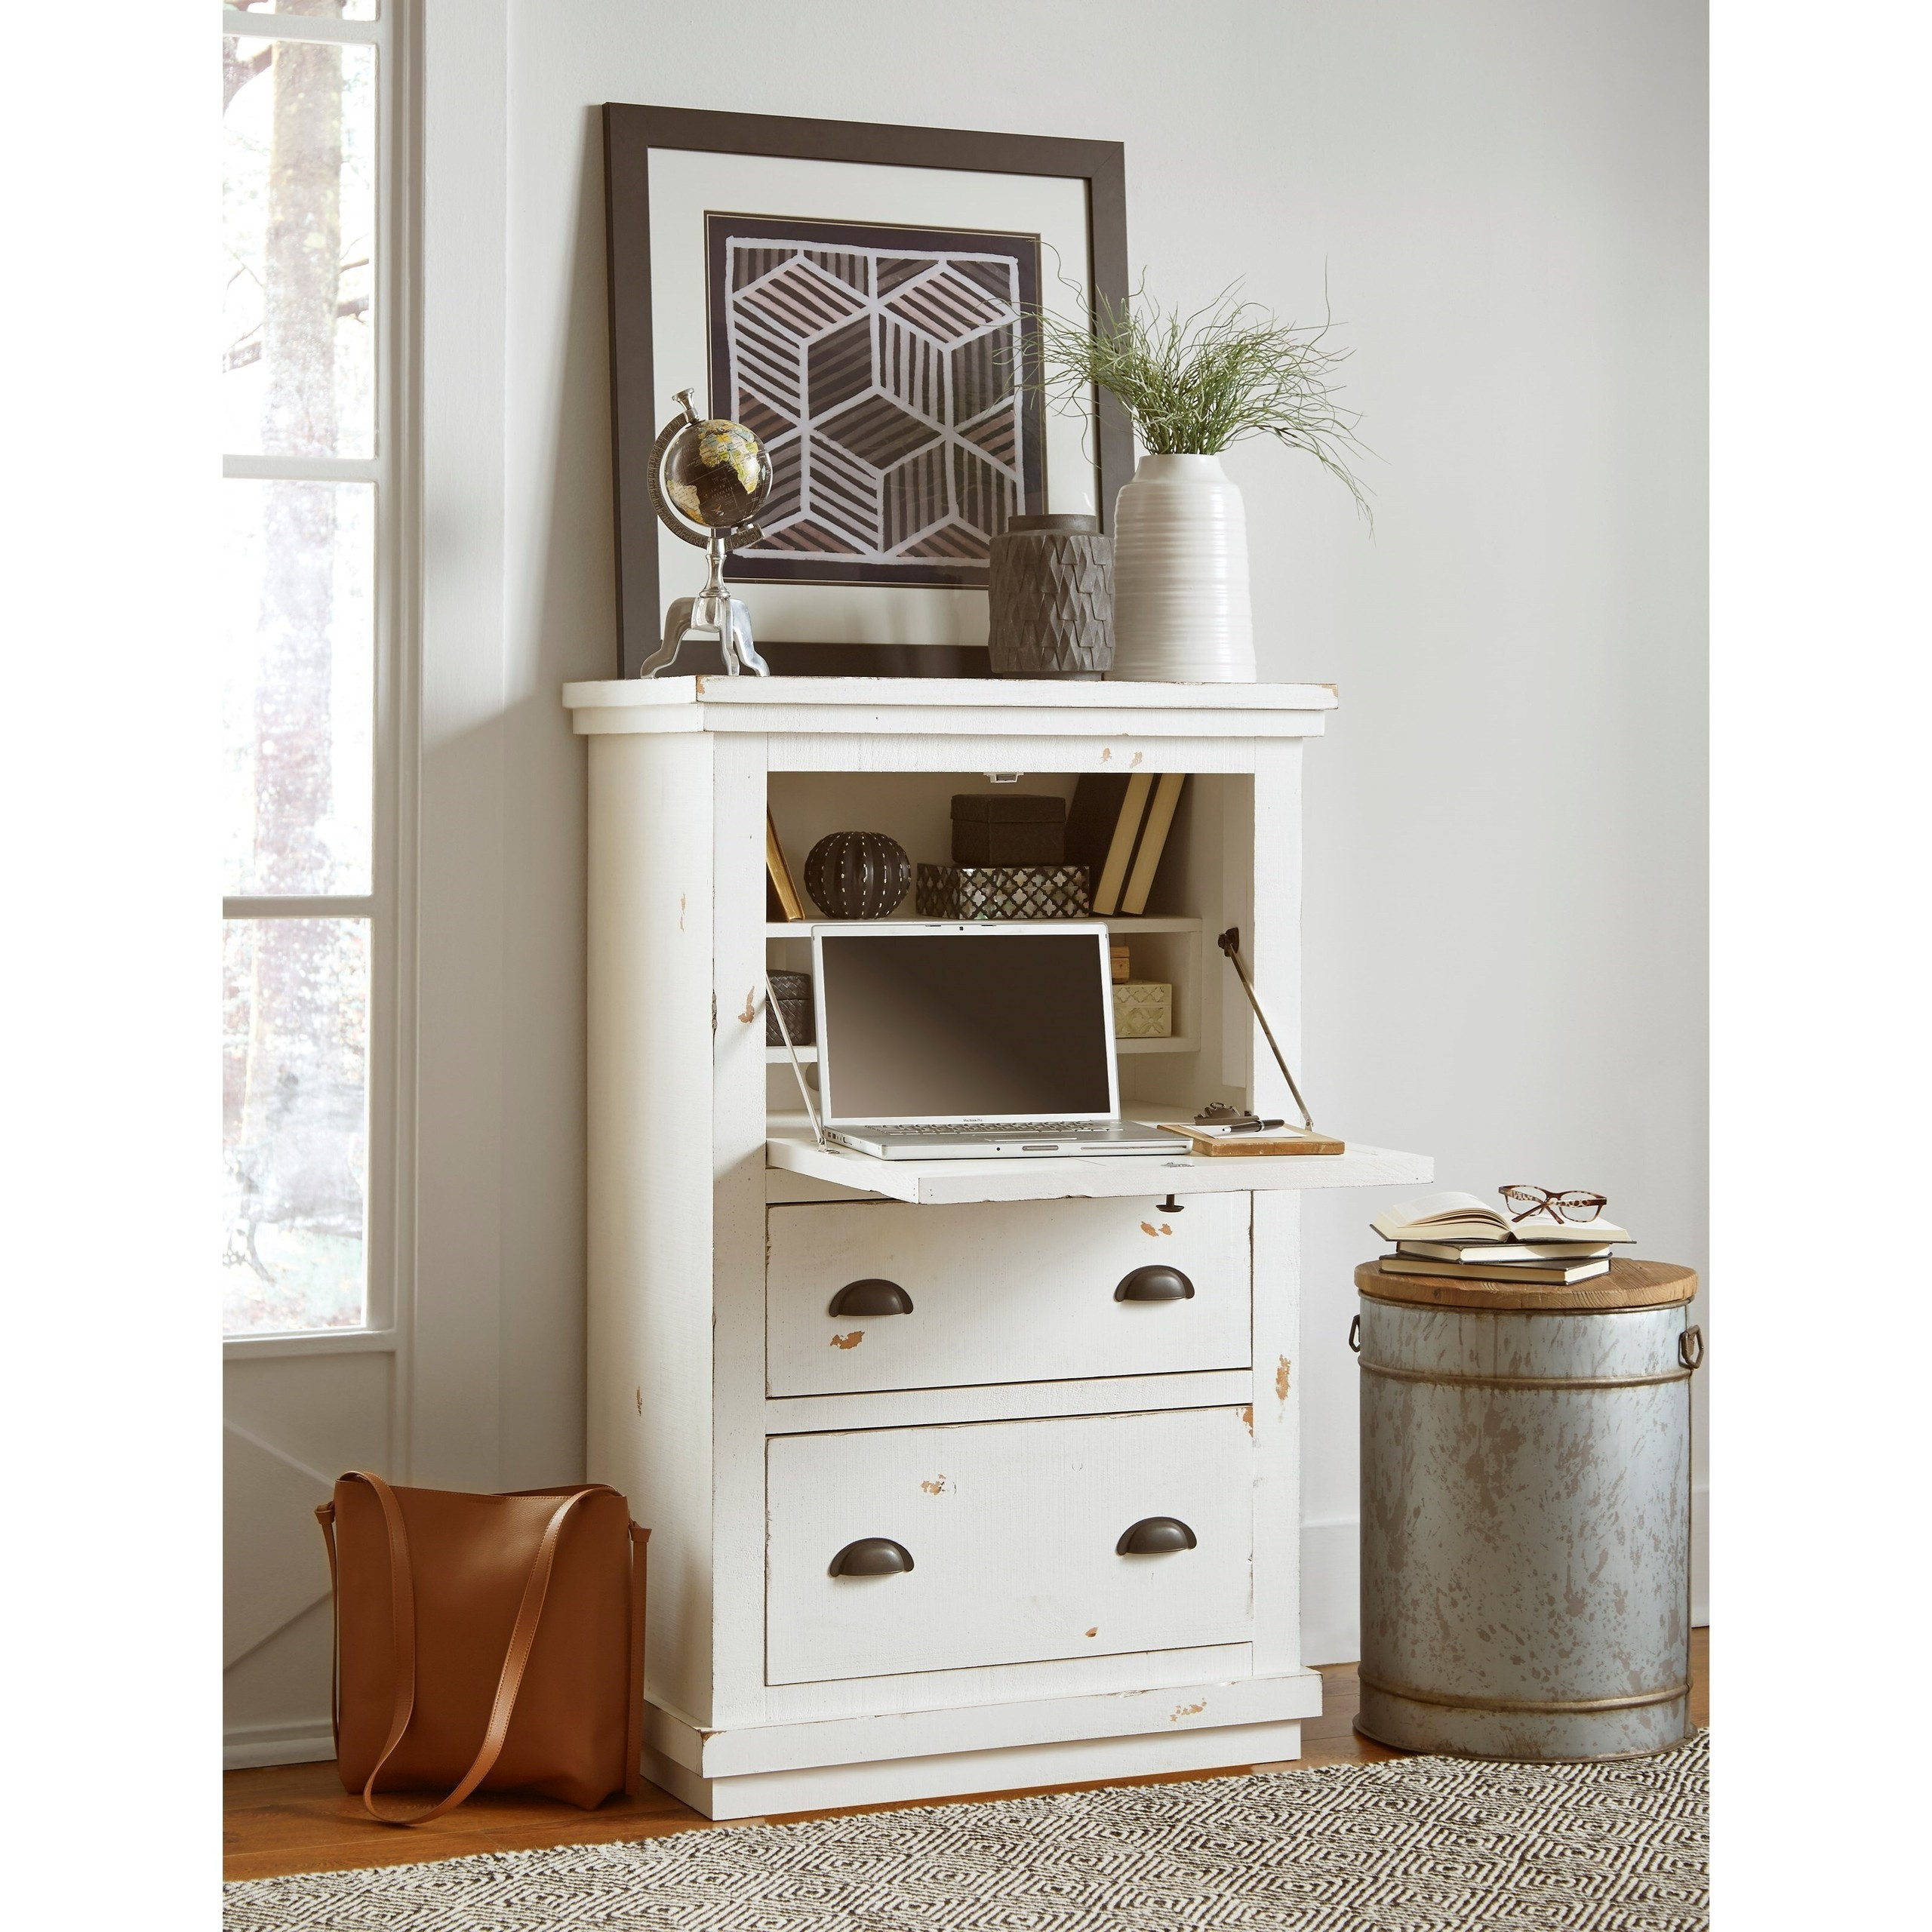 5 Things To Know When Buying A Computer Armoire